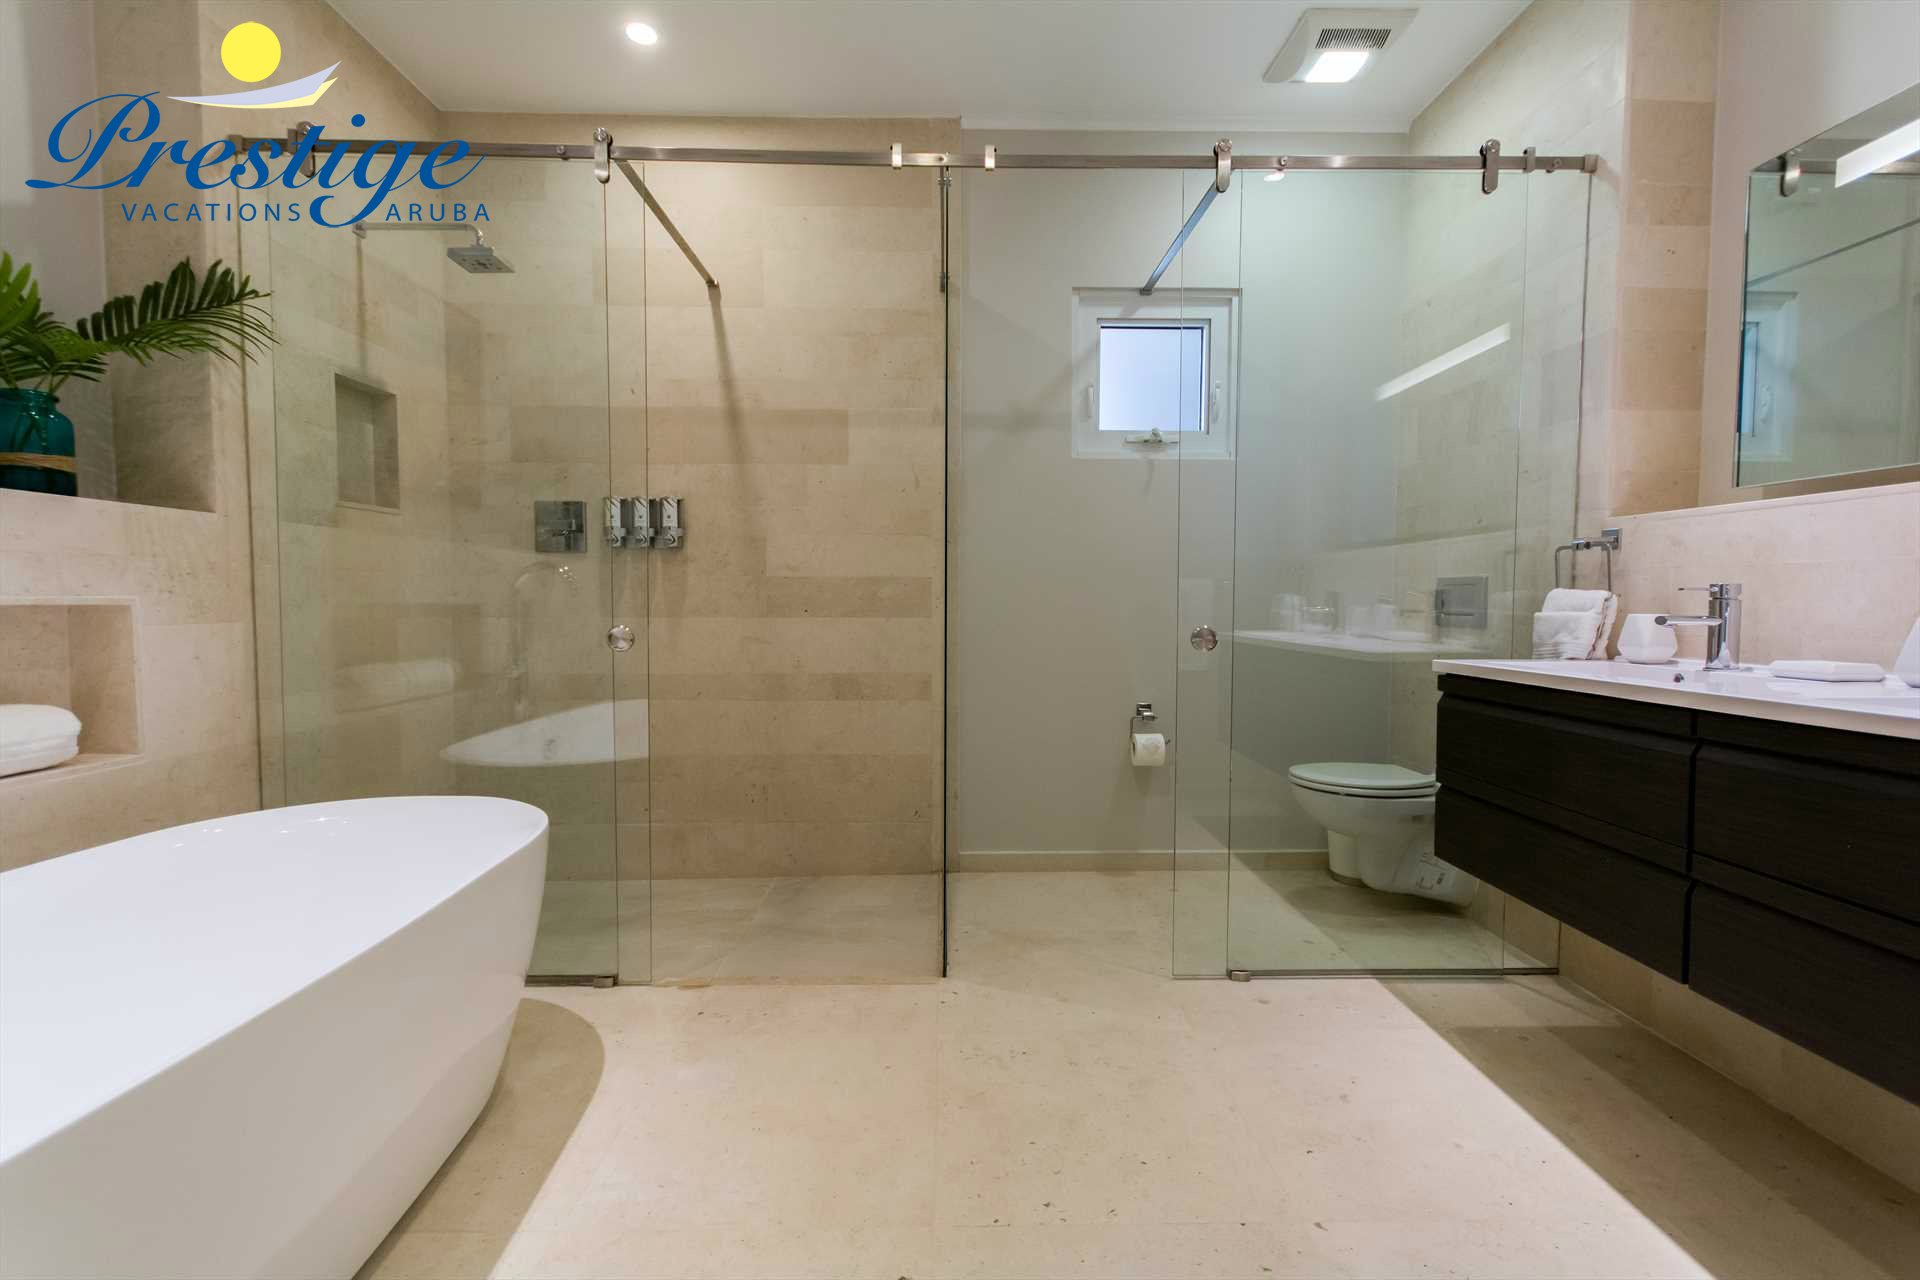 The master modern en-suite bathroom